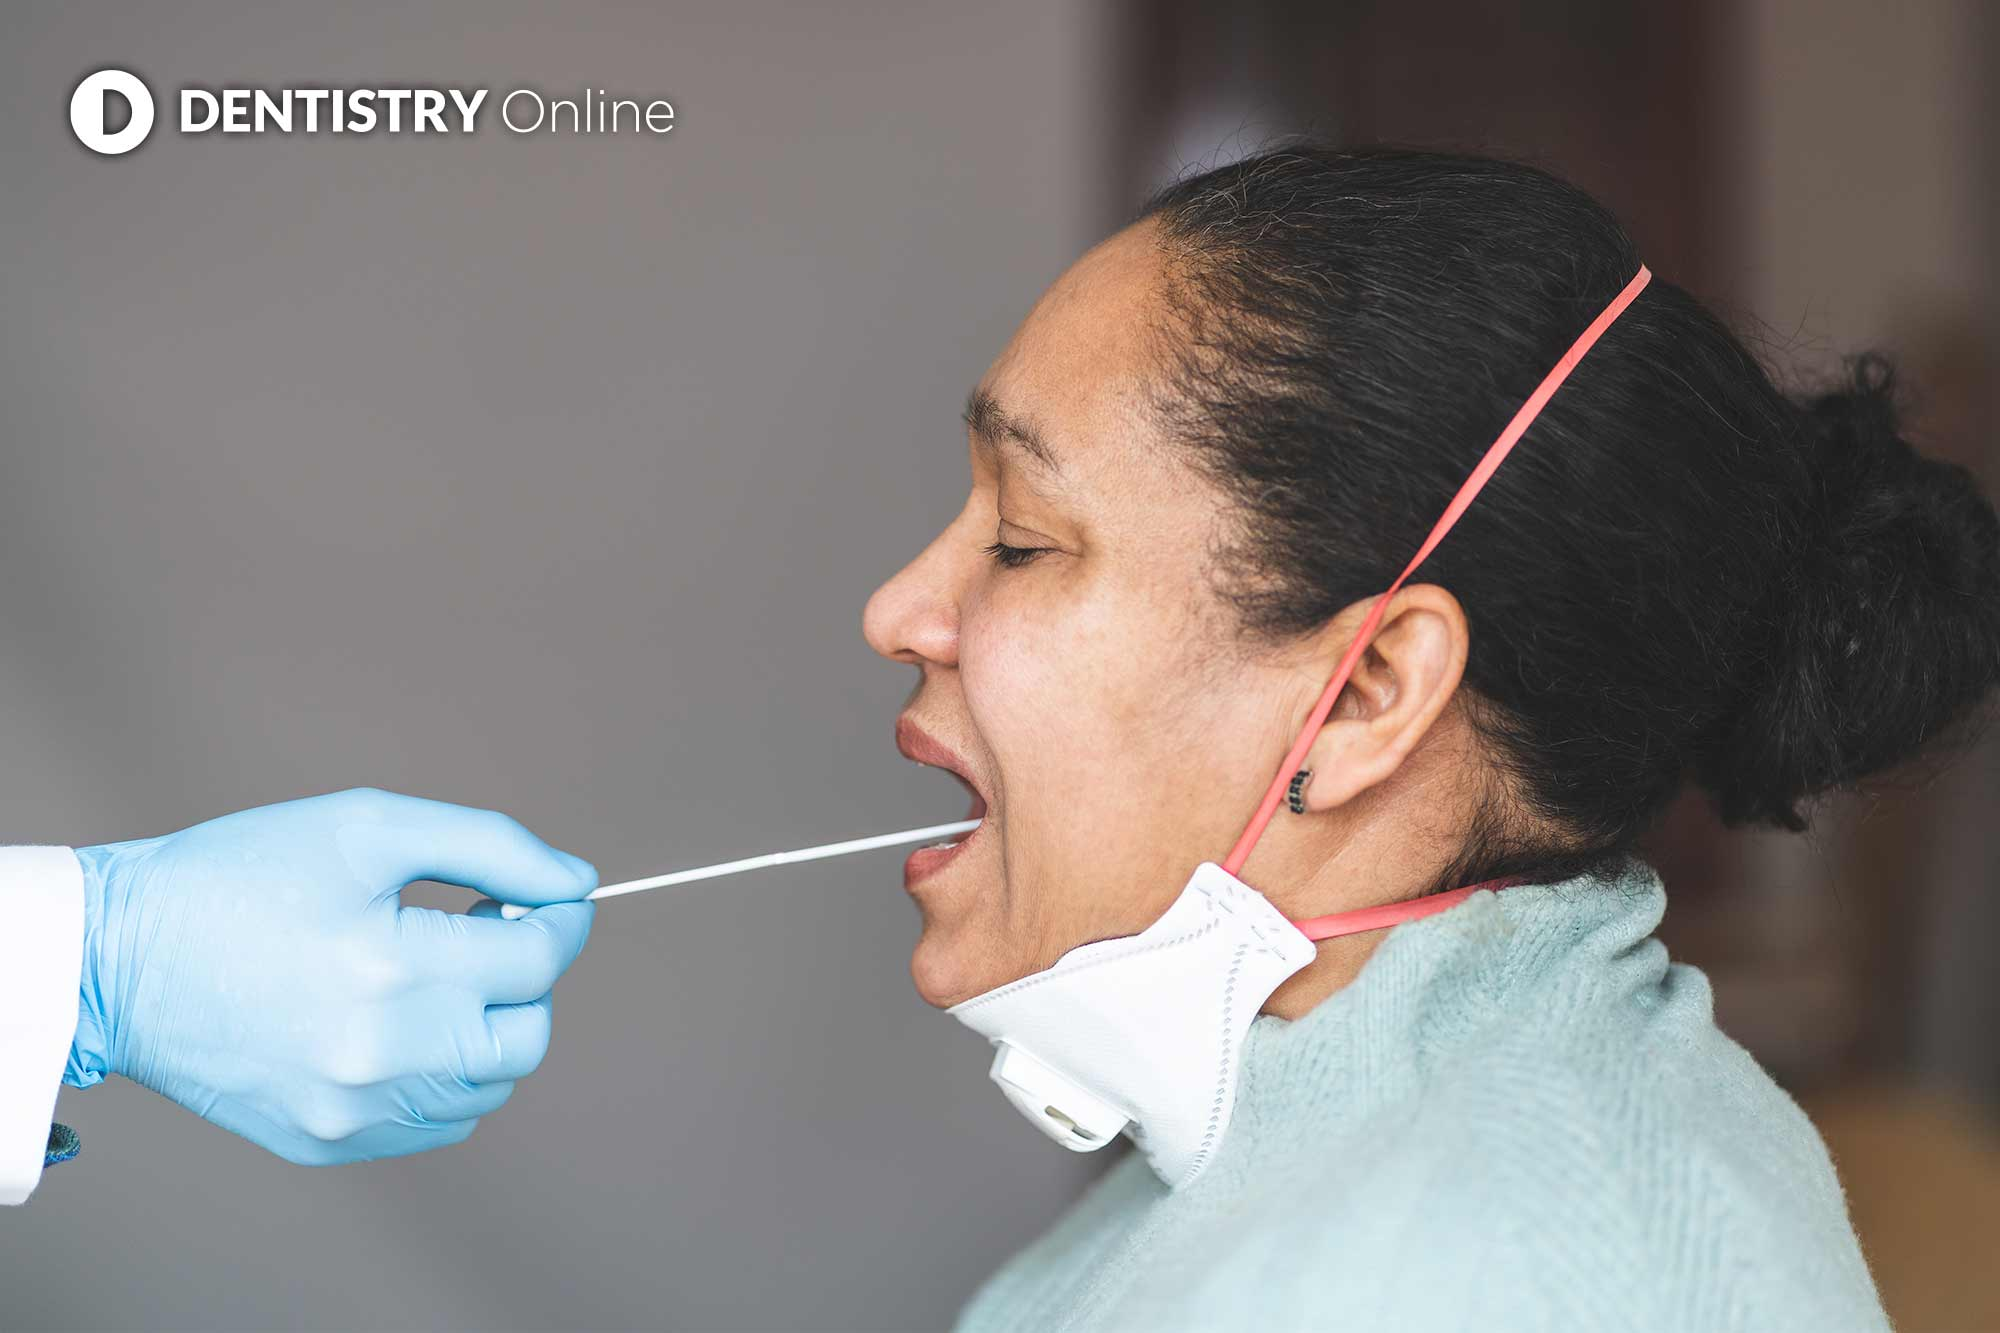 A dentist is calling on dental teams to undertake COVID-19 saliva tests on their patients